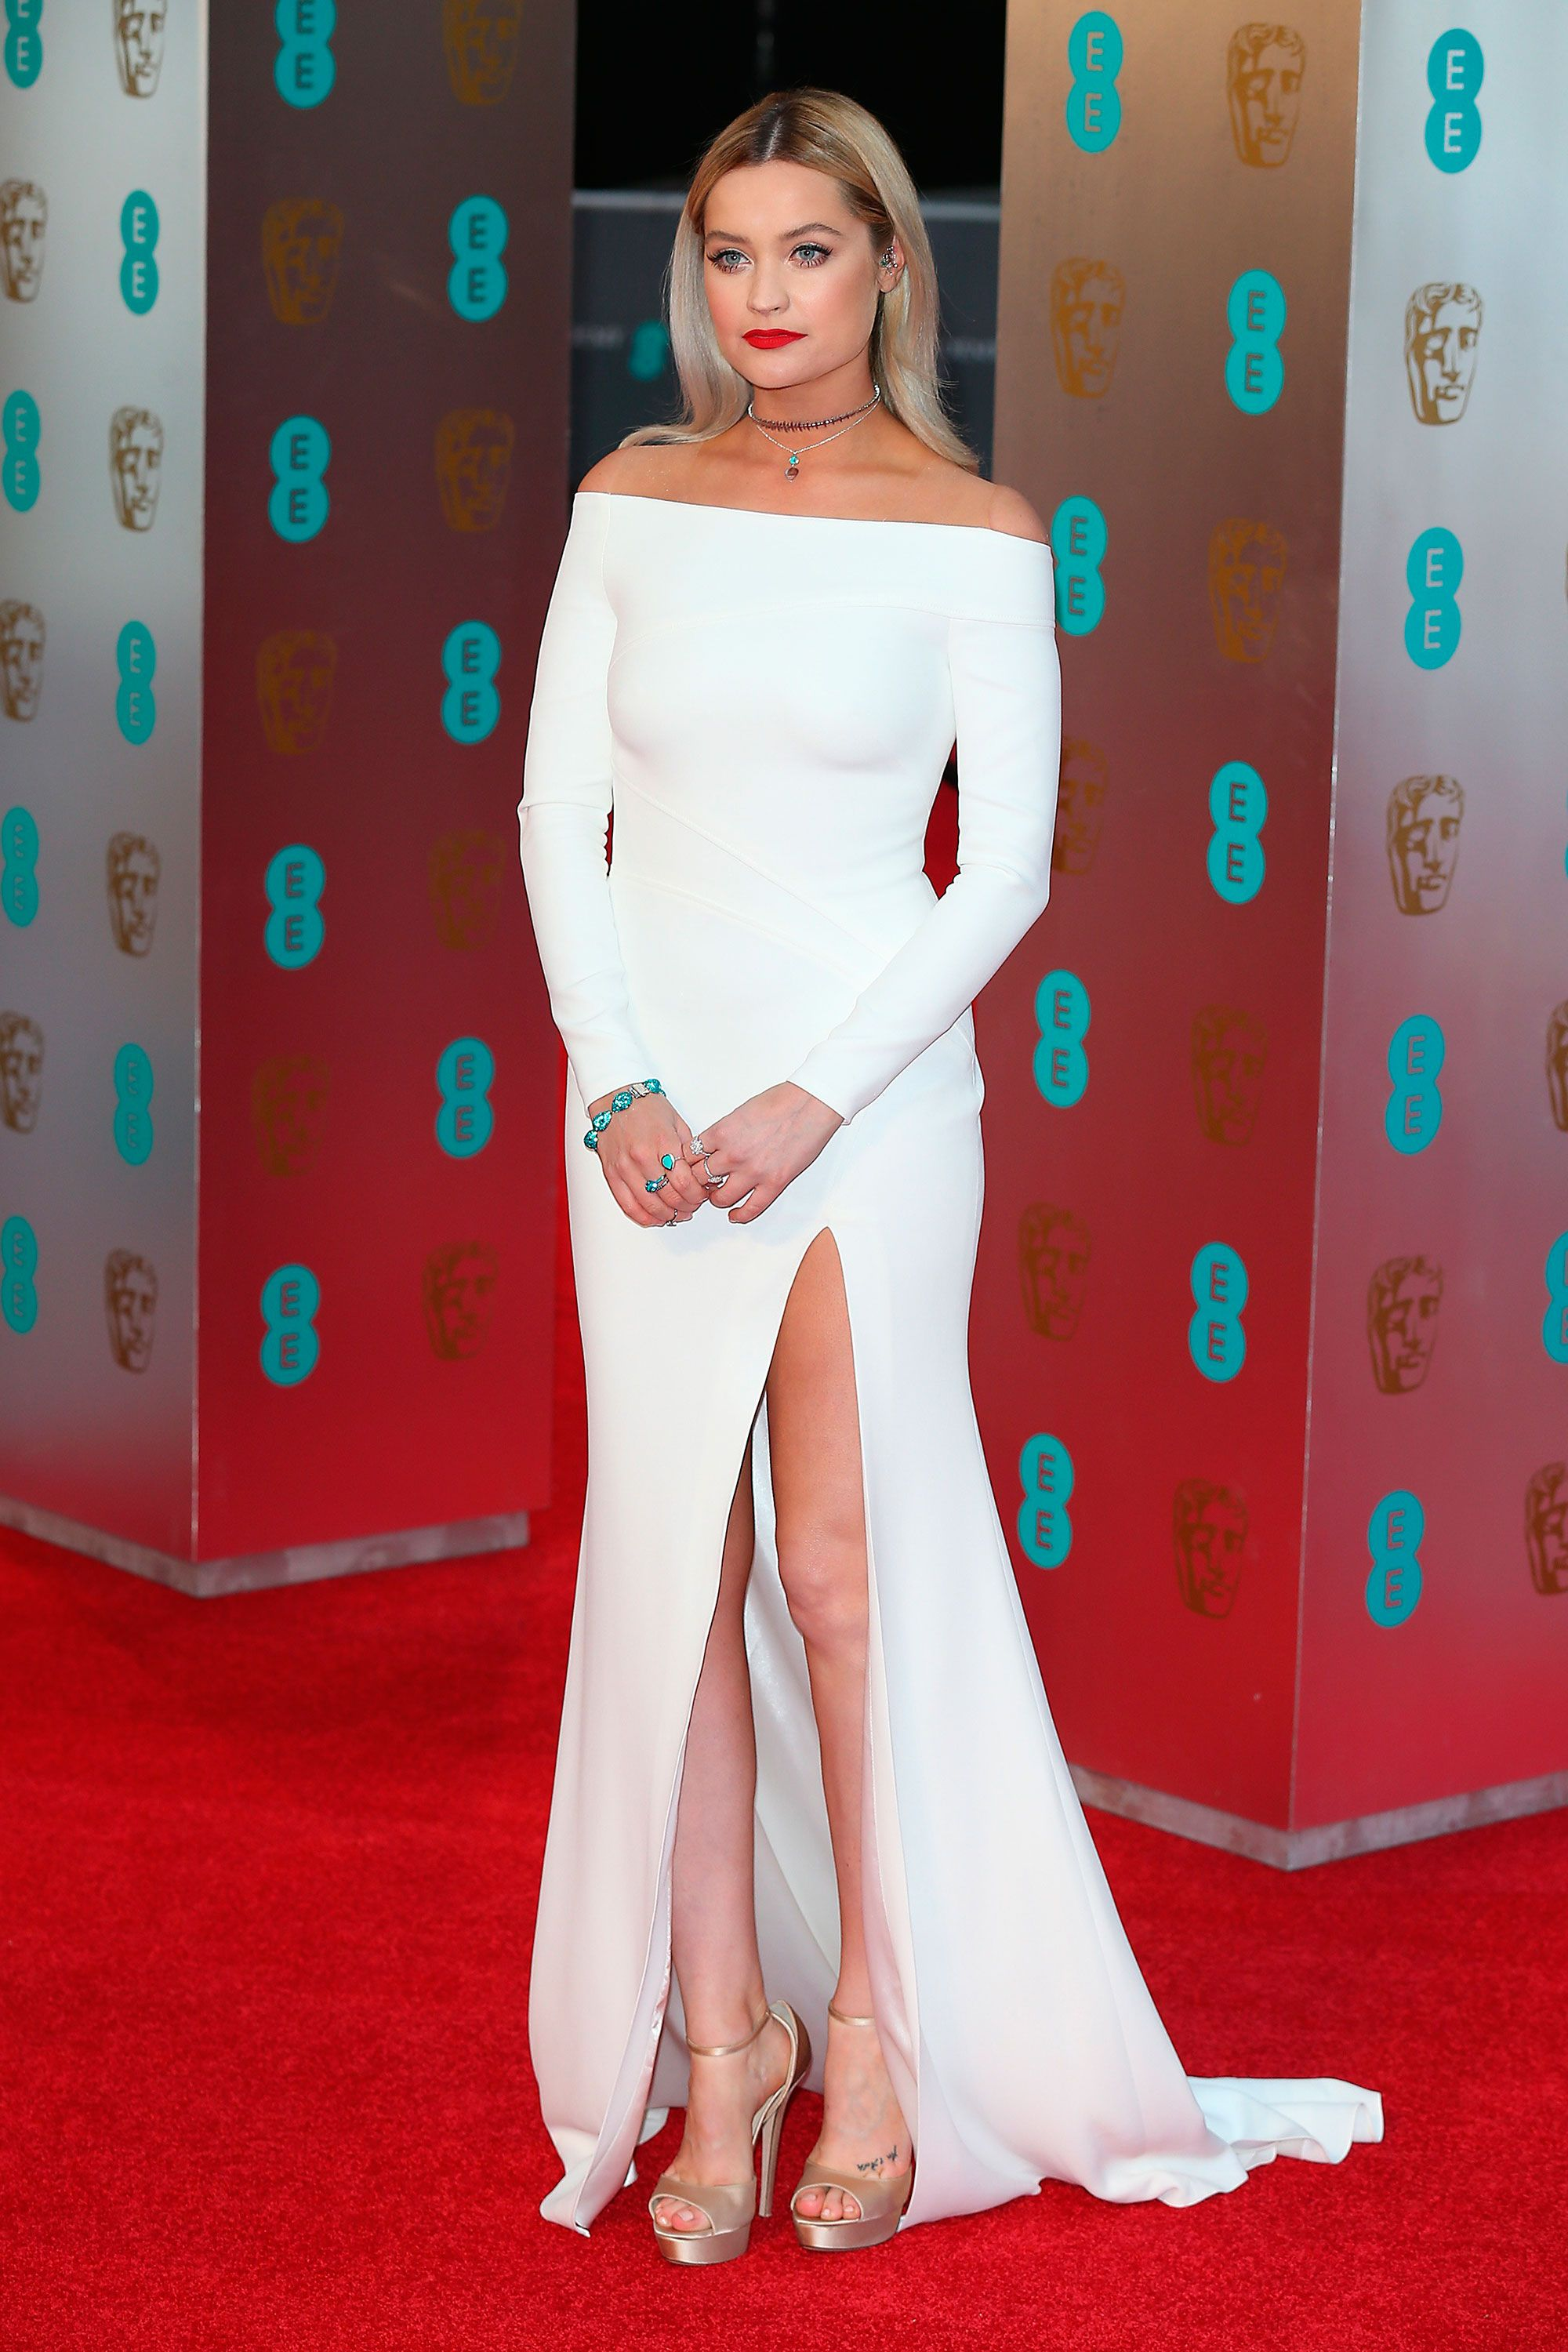 97849a50e4bd Laura Whitmore in an off-the-shoulder gown